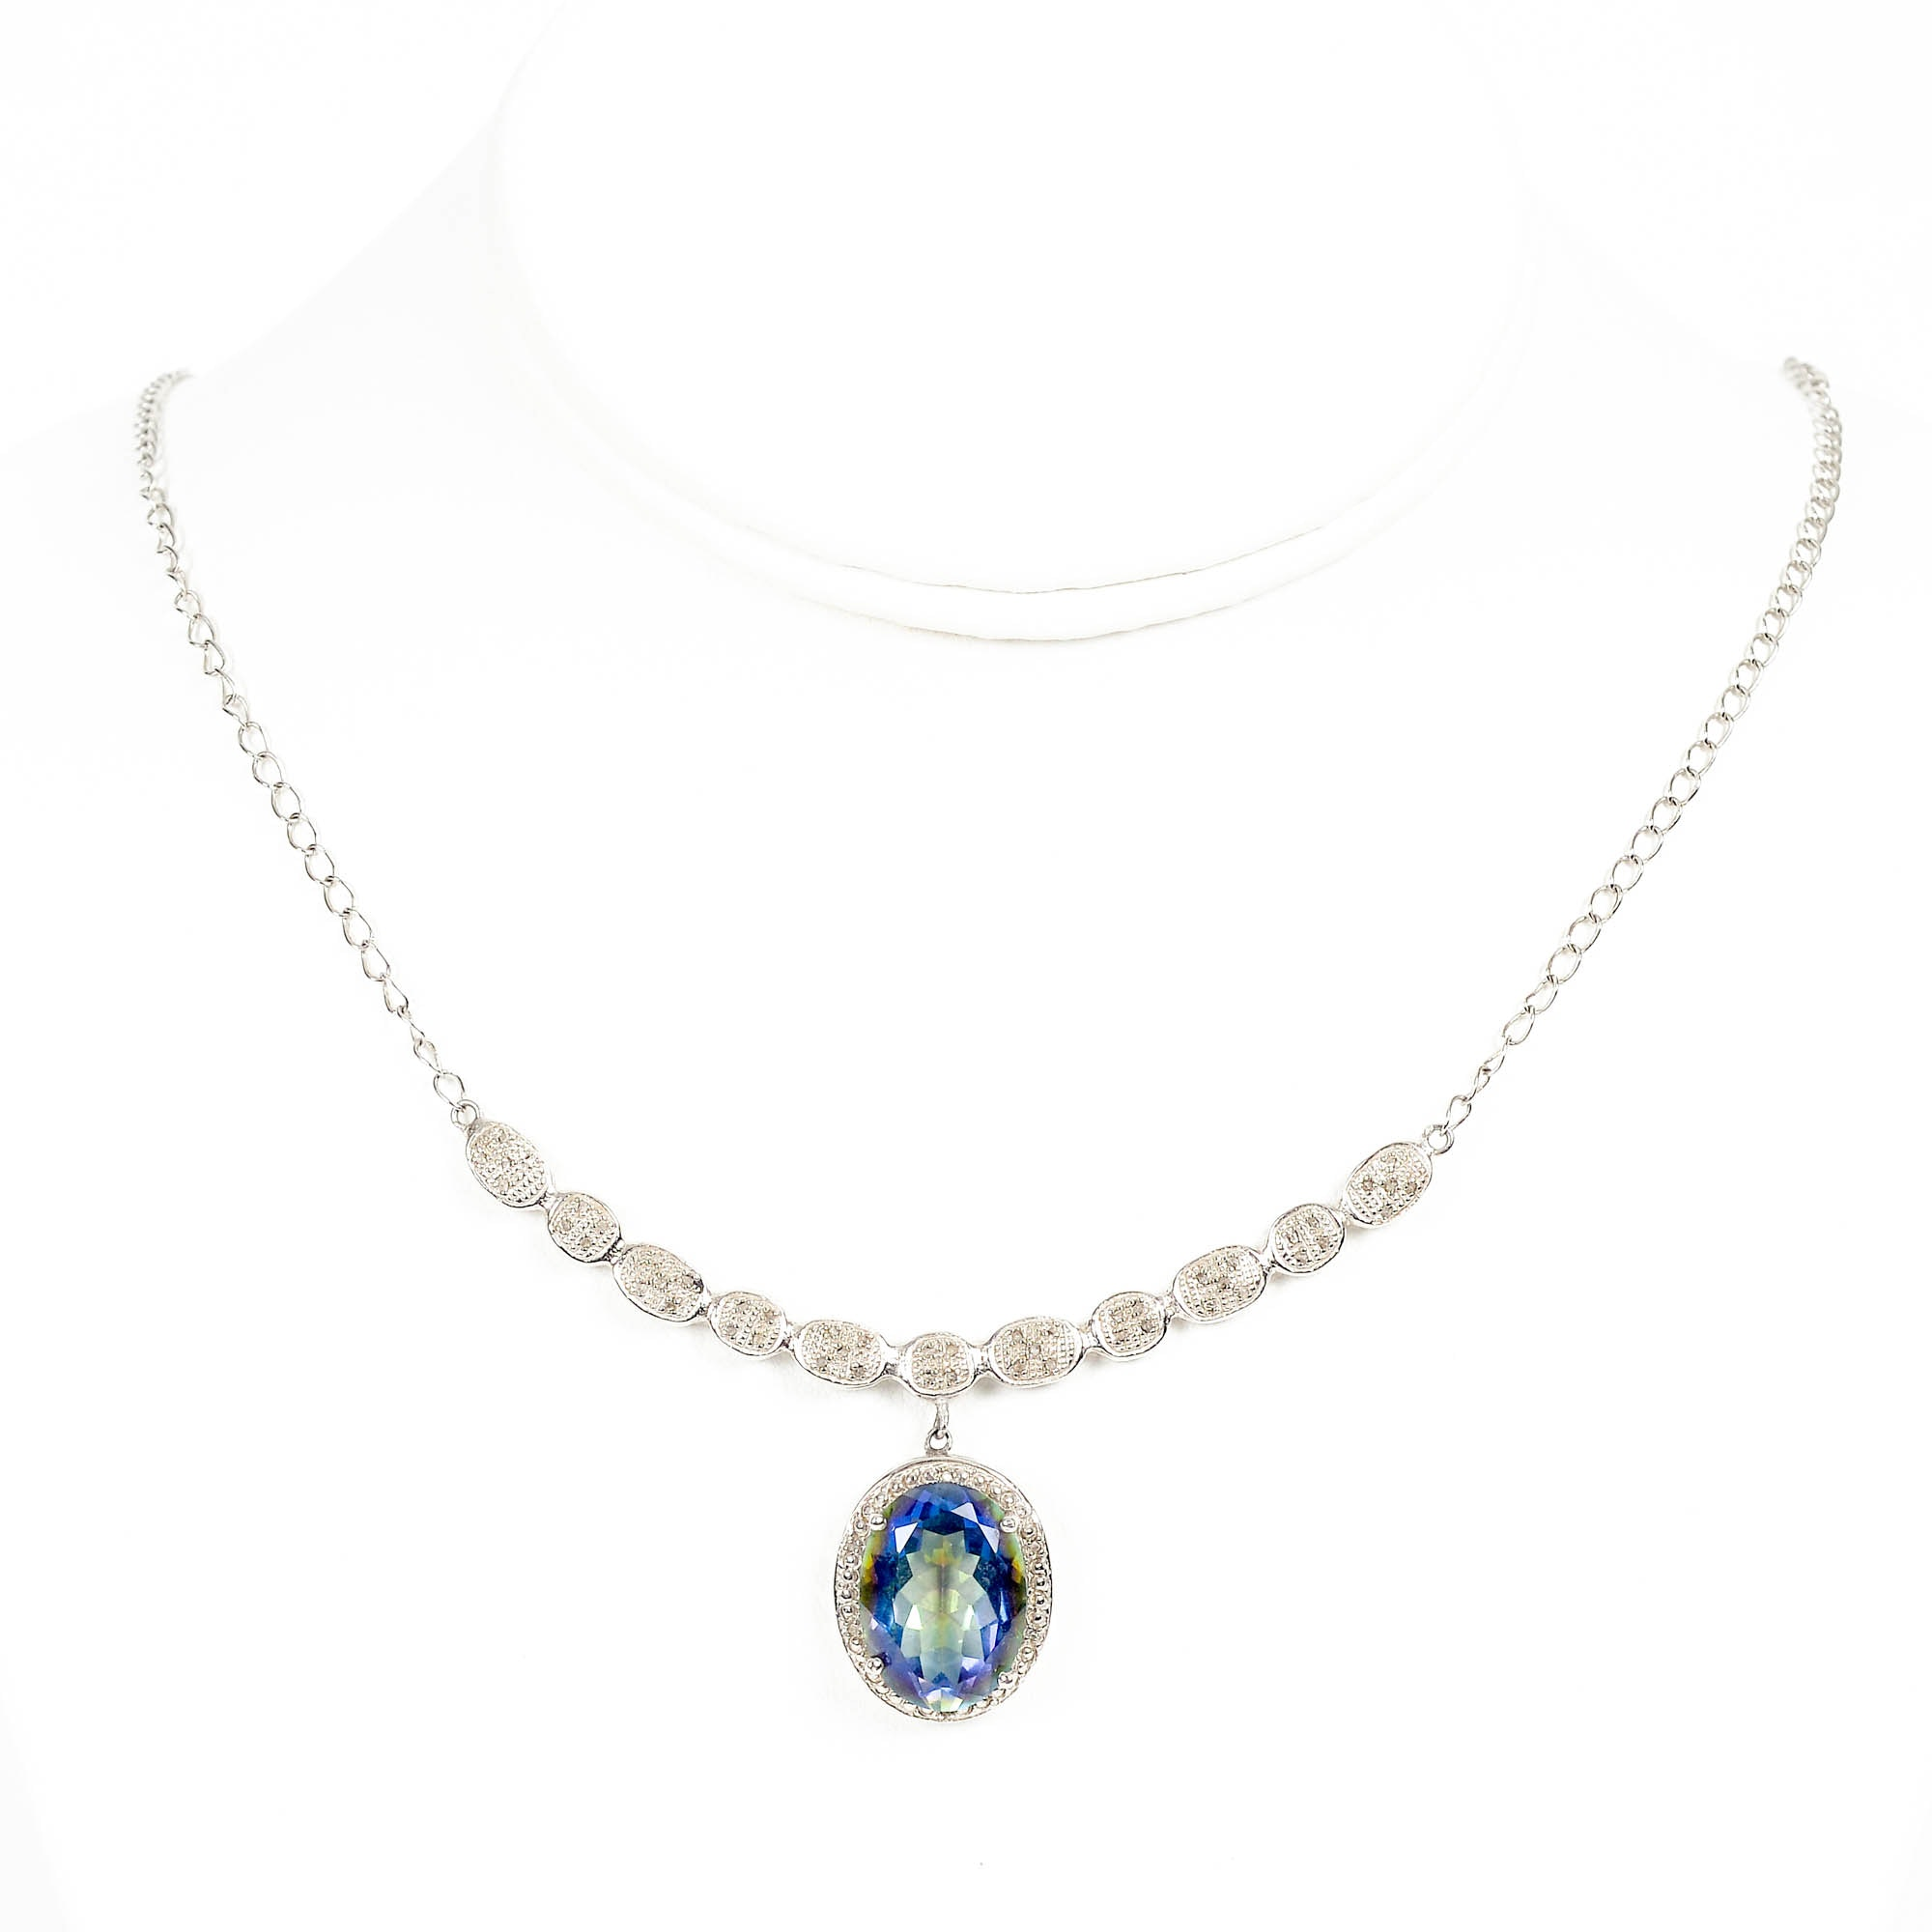 Sterling Silver Necklace with Quartz and Diamonds and Necklace with Amethyst and Quartz